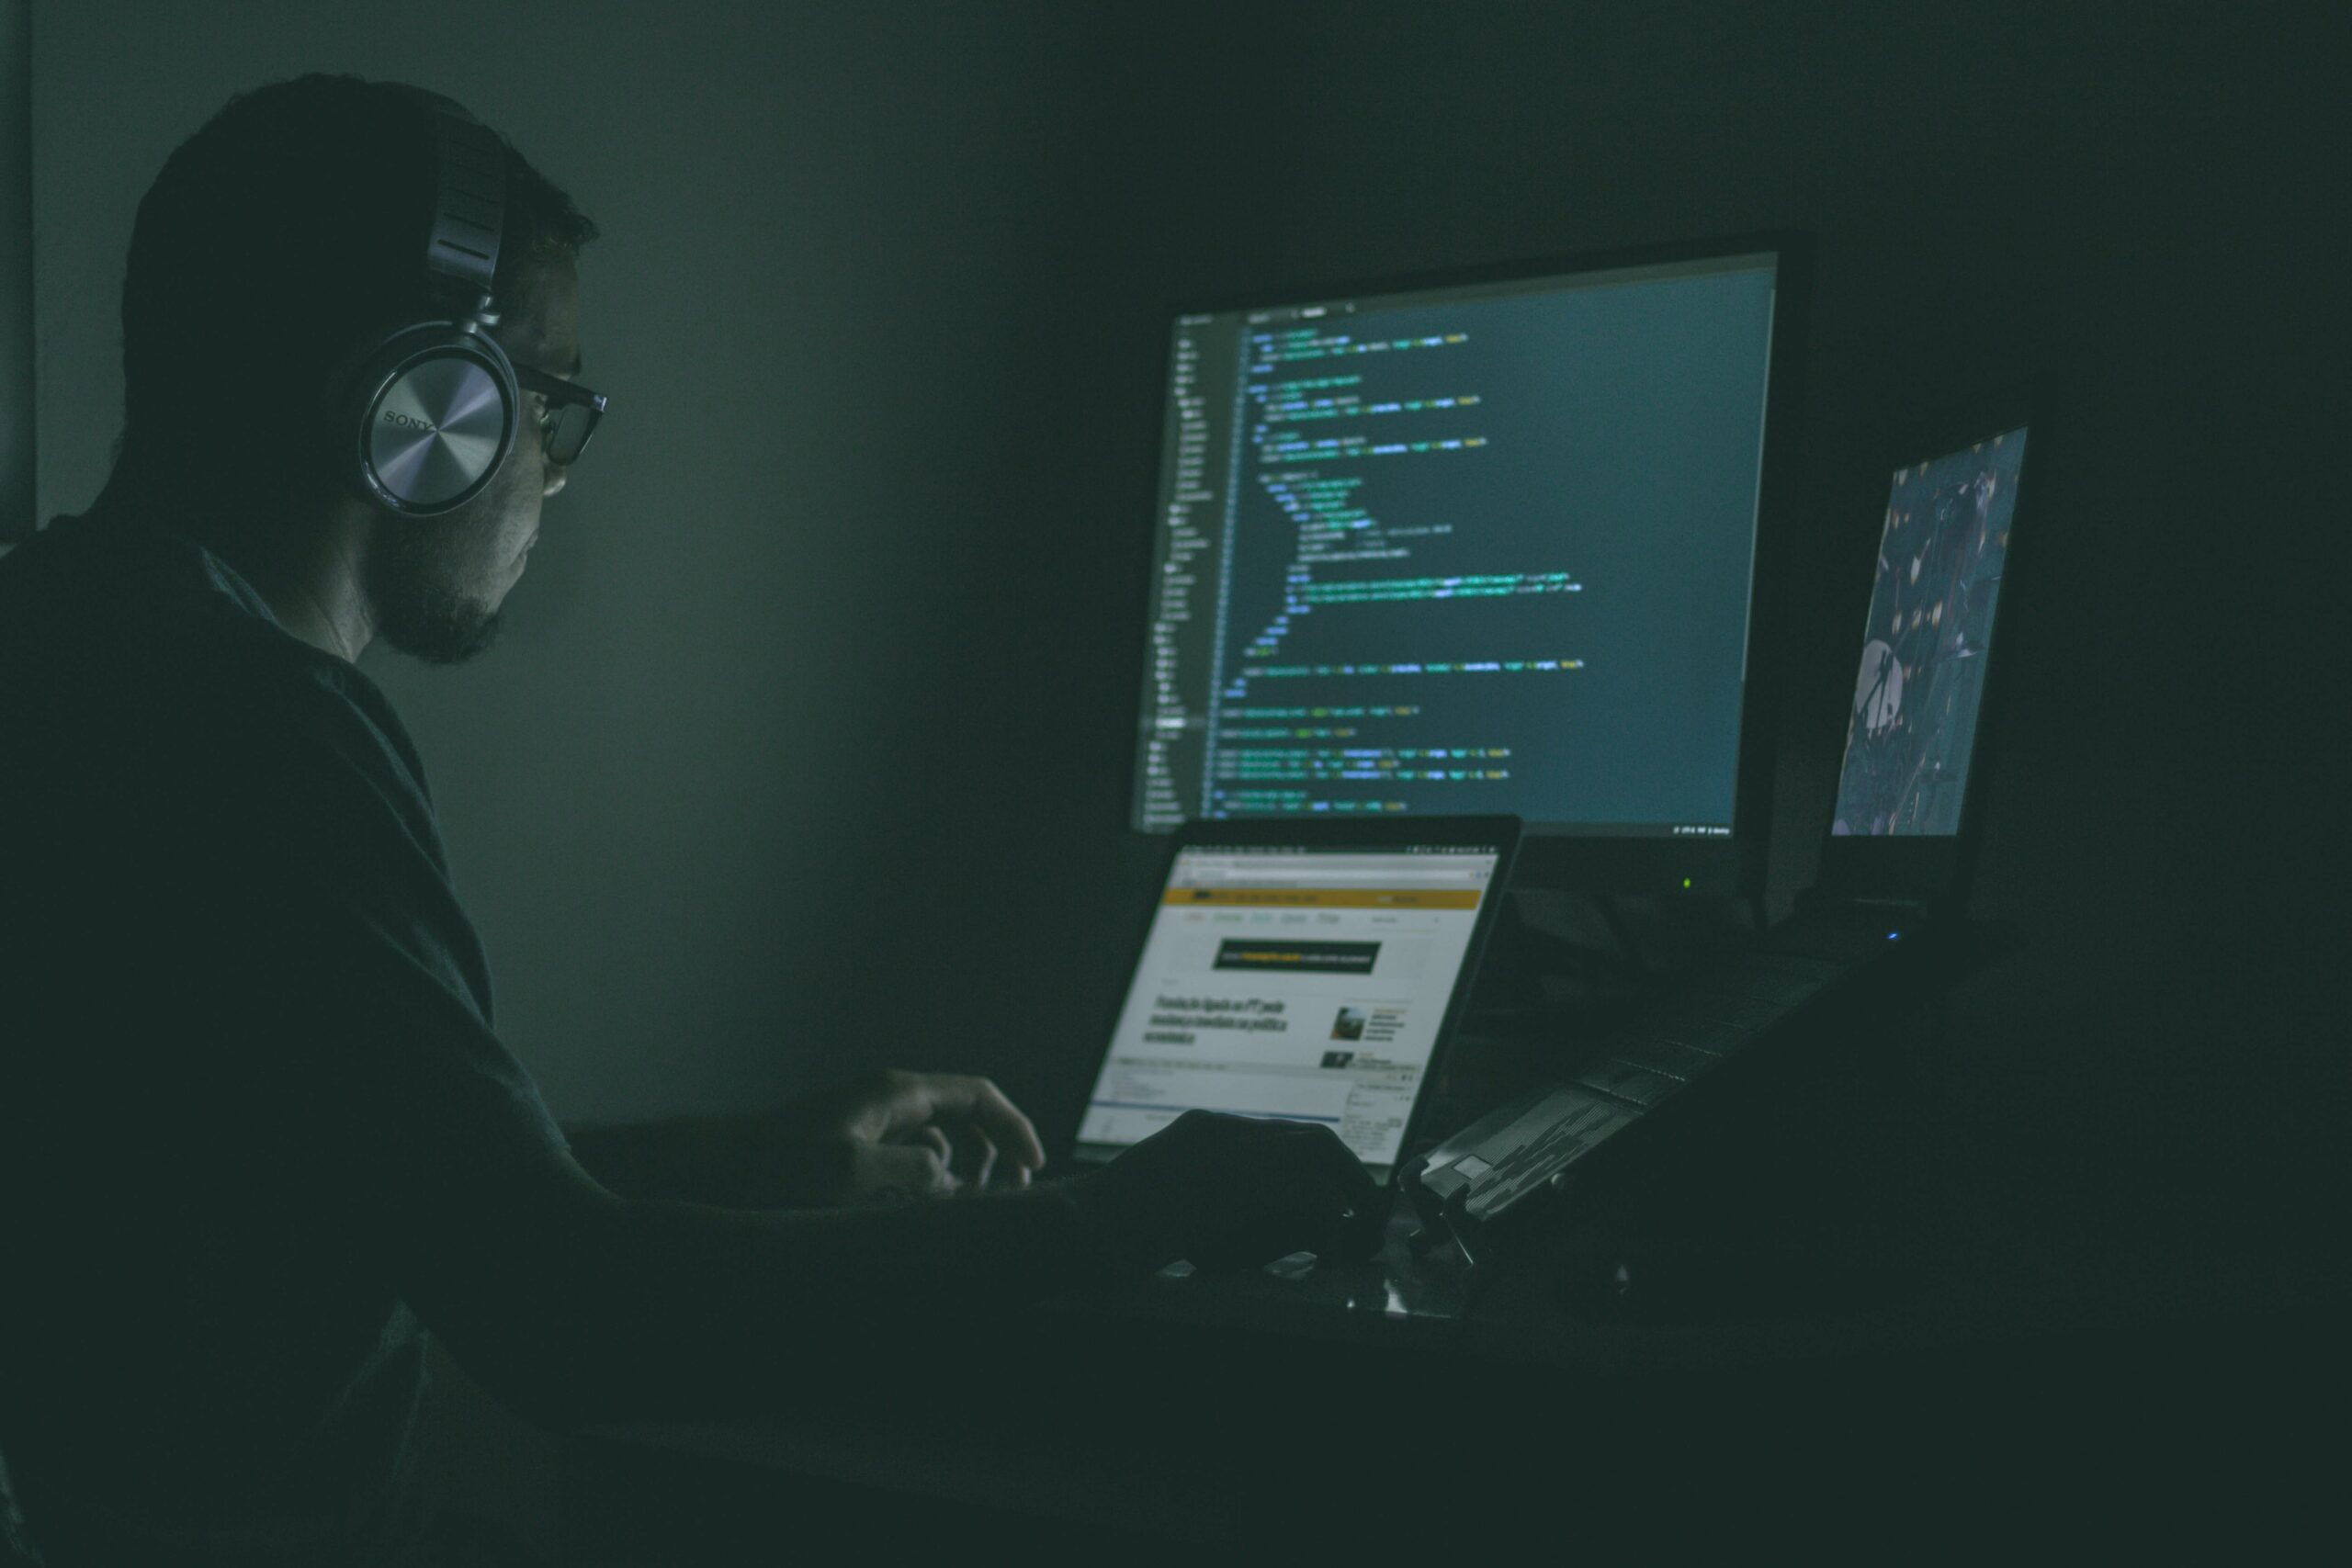 man on computer: cyber crime penalties and cyber crime sanctions